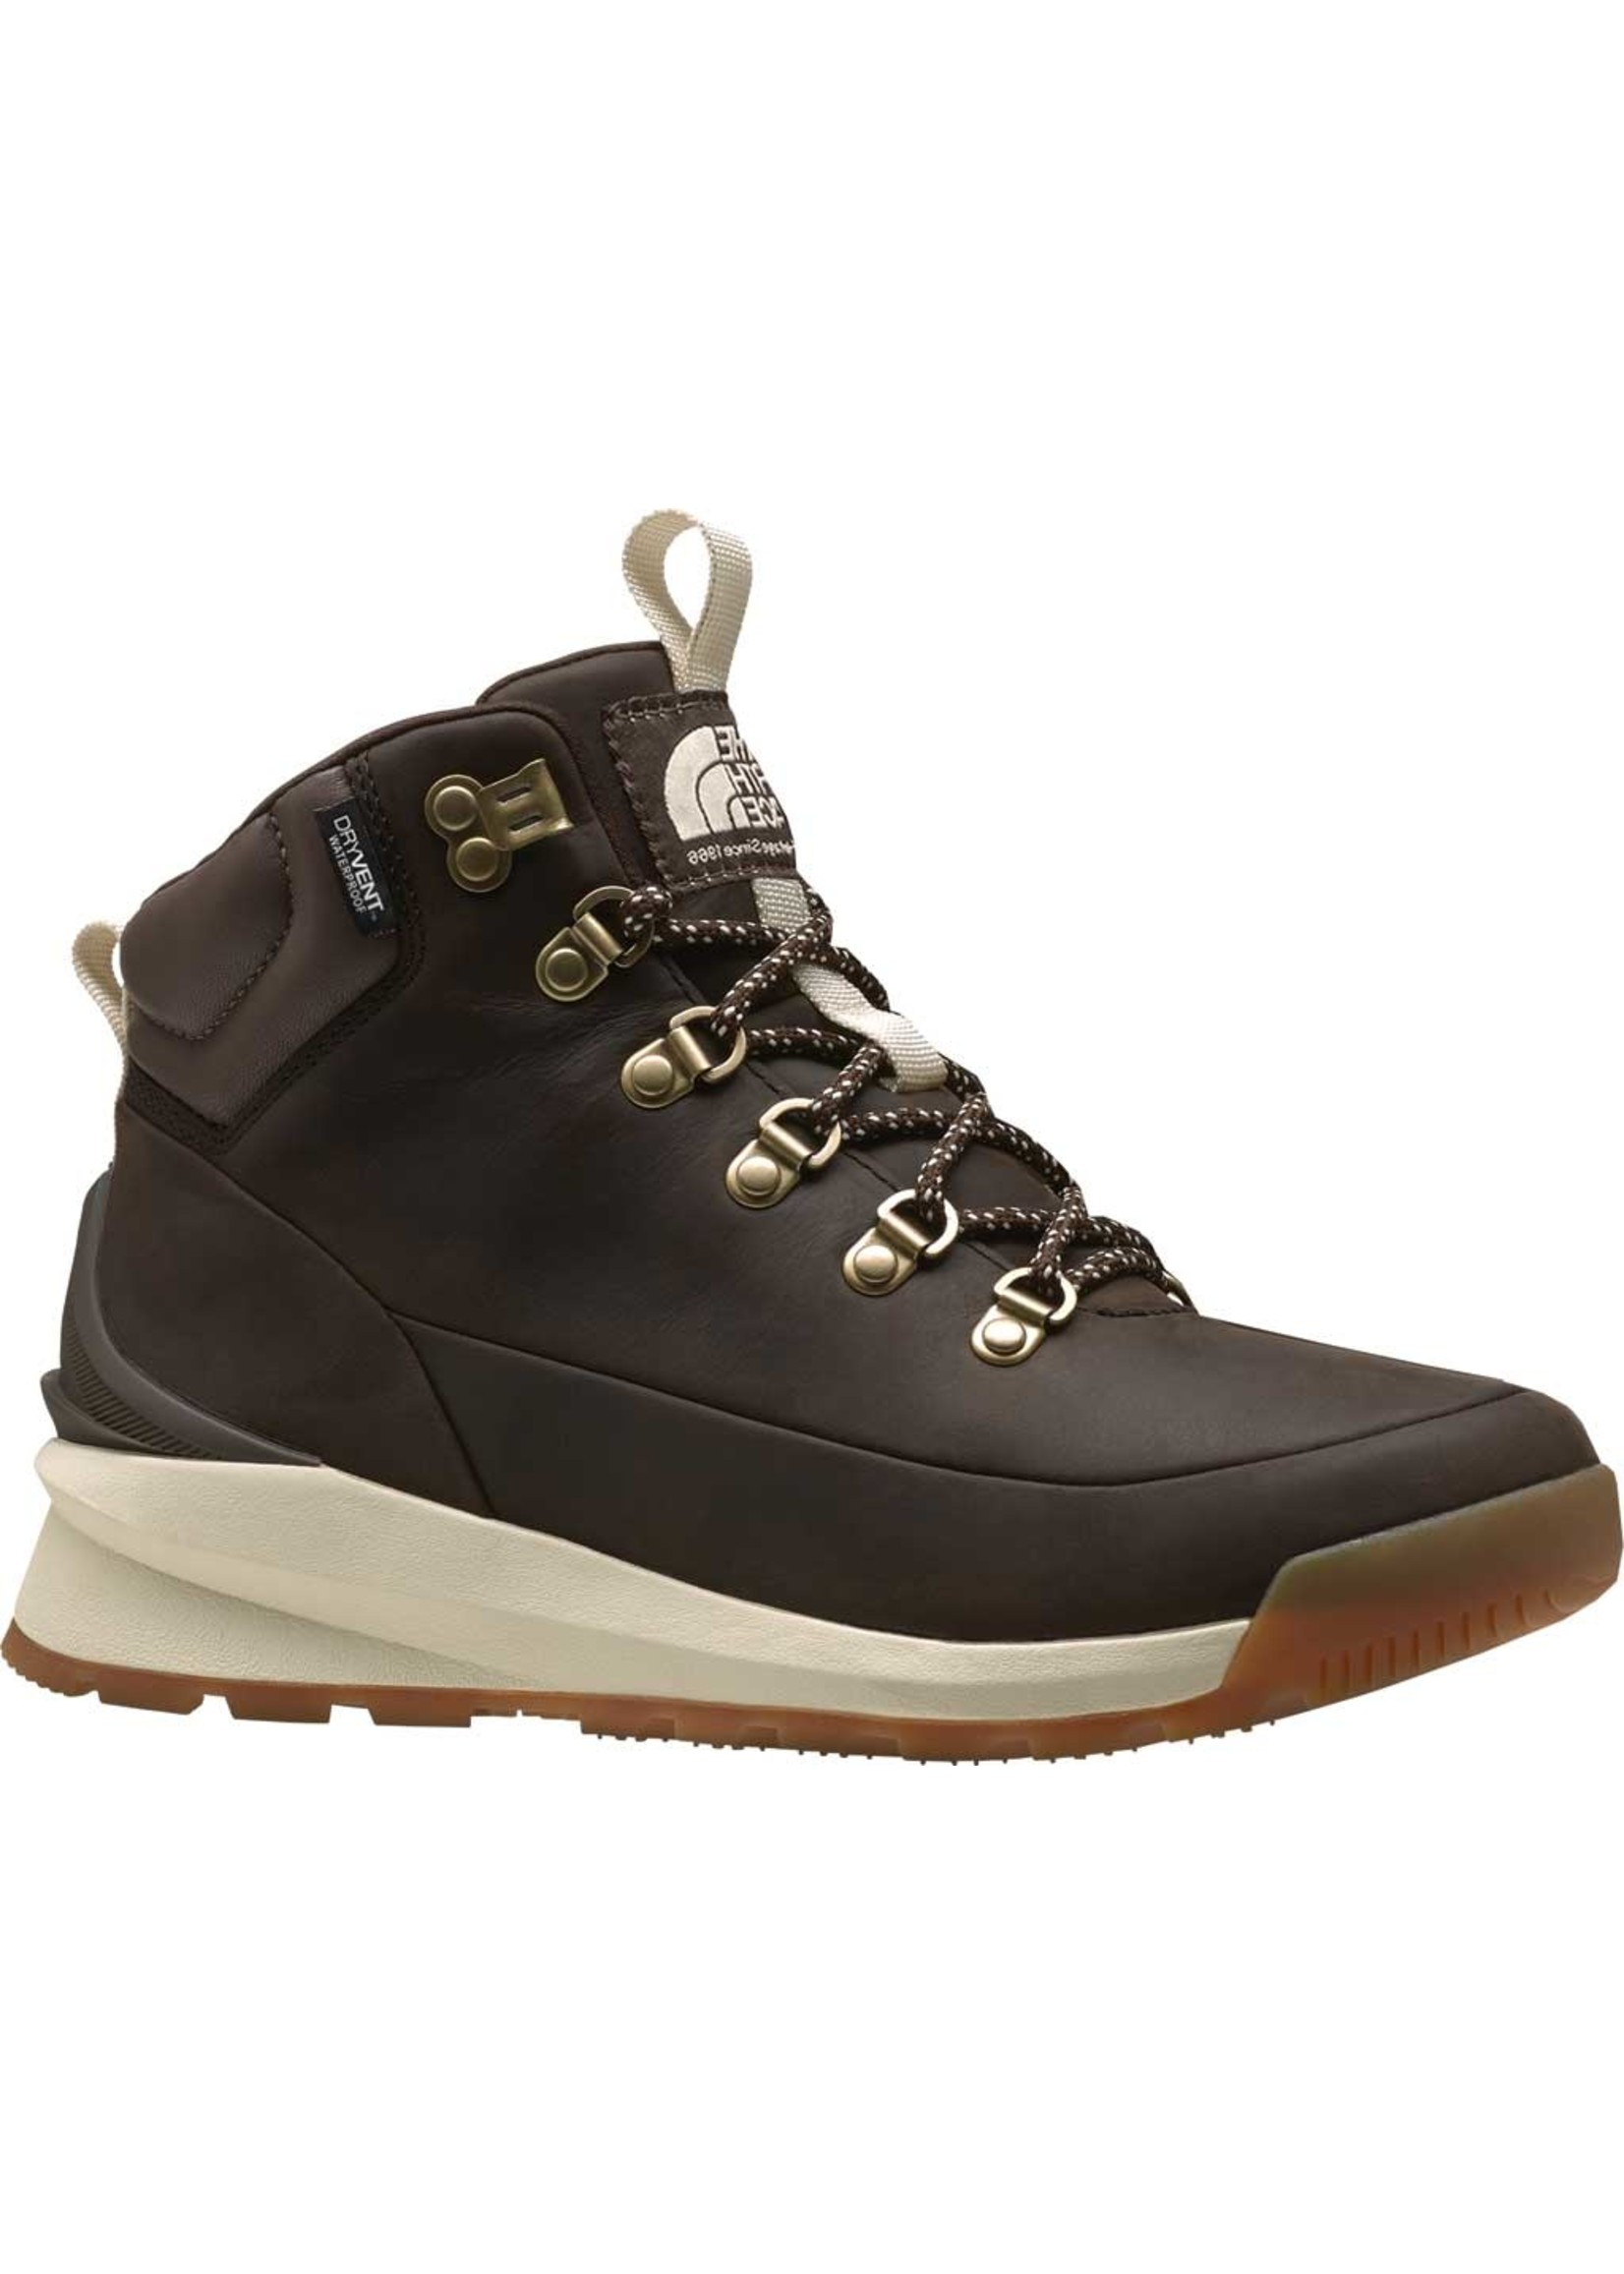 THE NORTH FACE Bottes Back-to-Berkeley